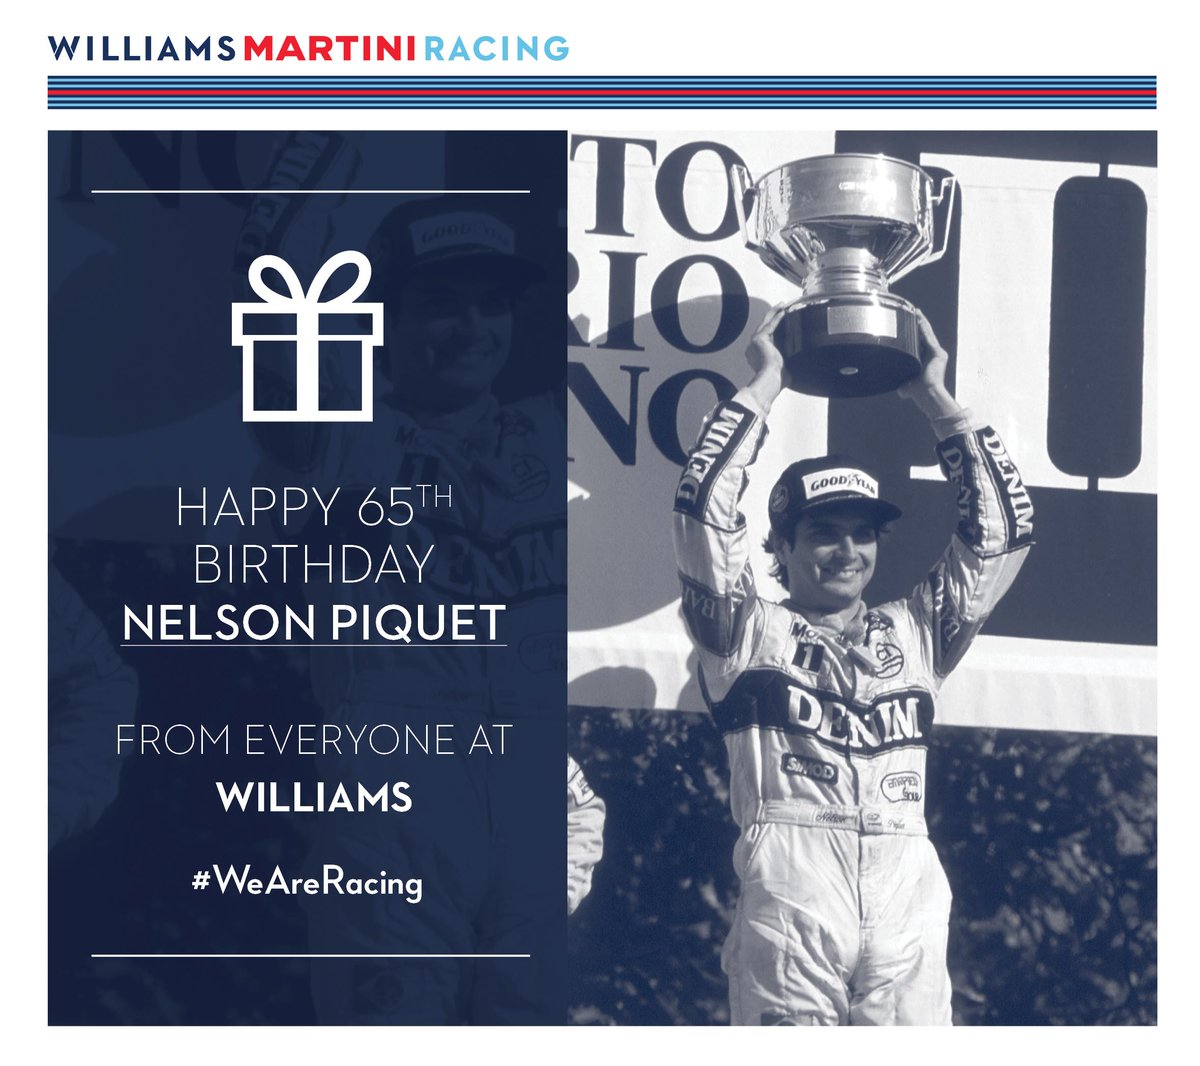 From all at Williams, we would like to wish a very big happy birthday to Nelson Piquet! #WeAreRacing